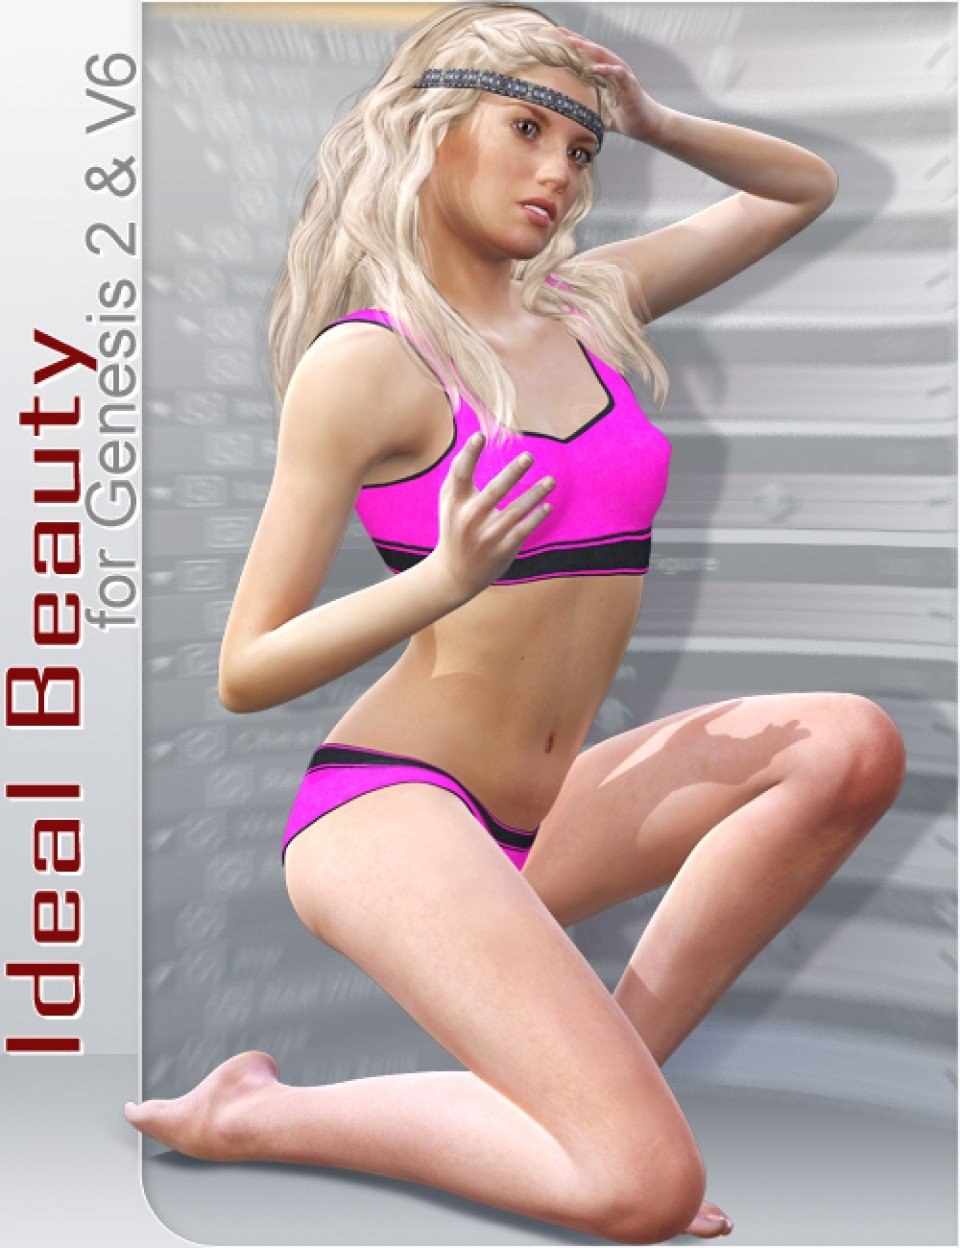 Ideal Beauty for Genesis 2 Female and V6_DAZ3D下载站